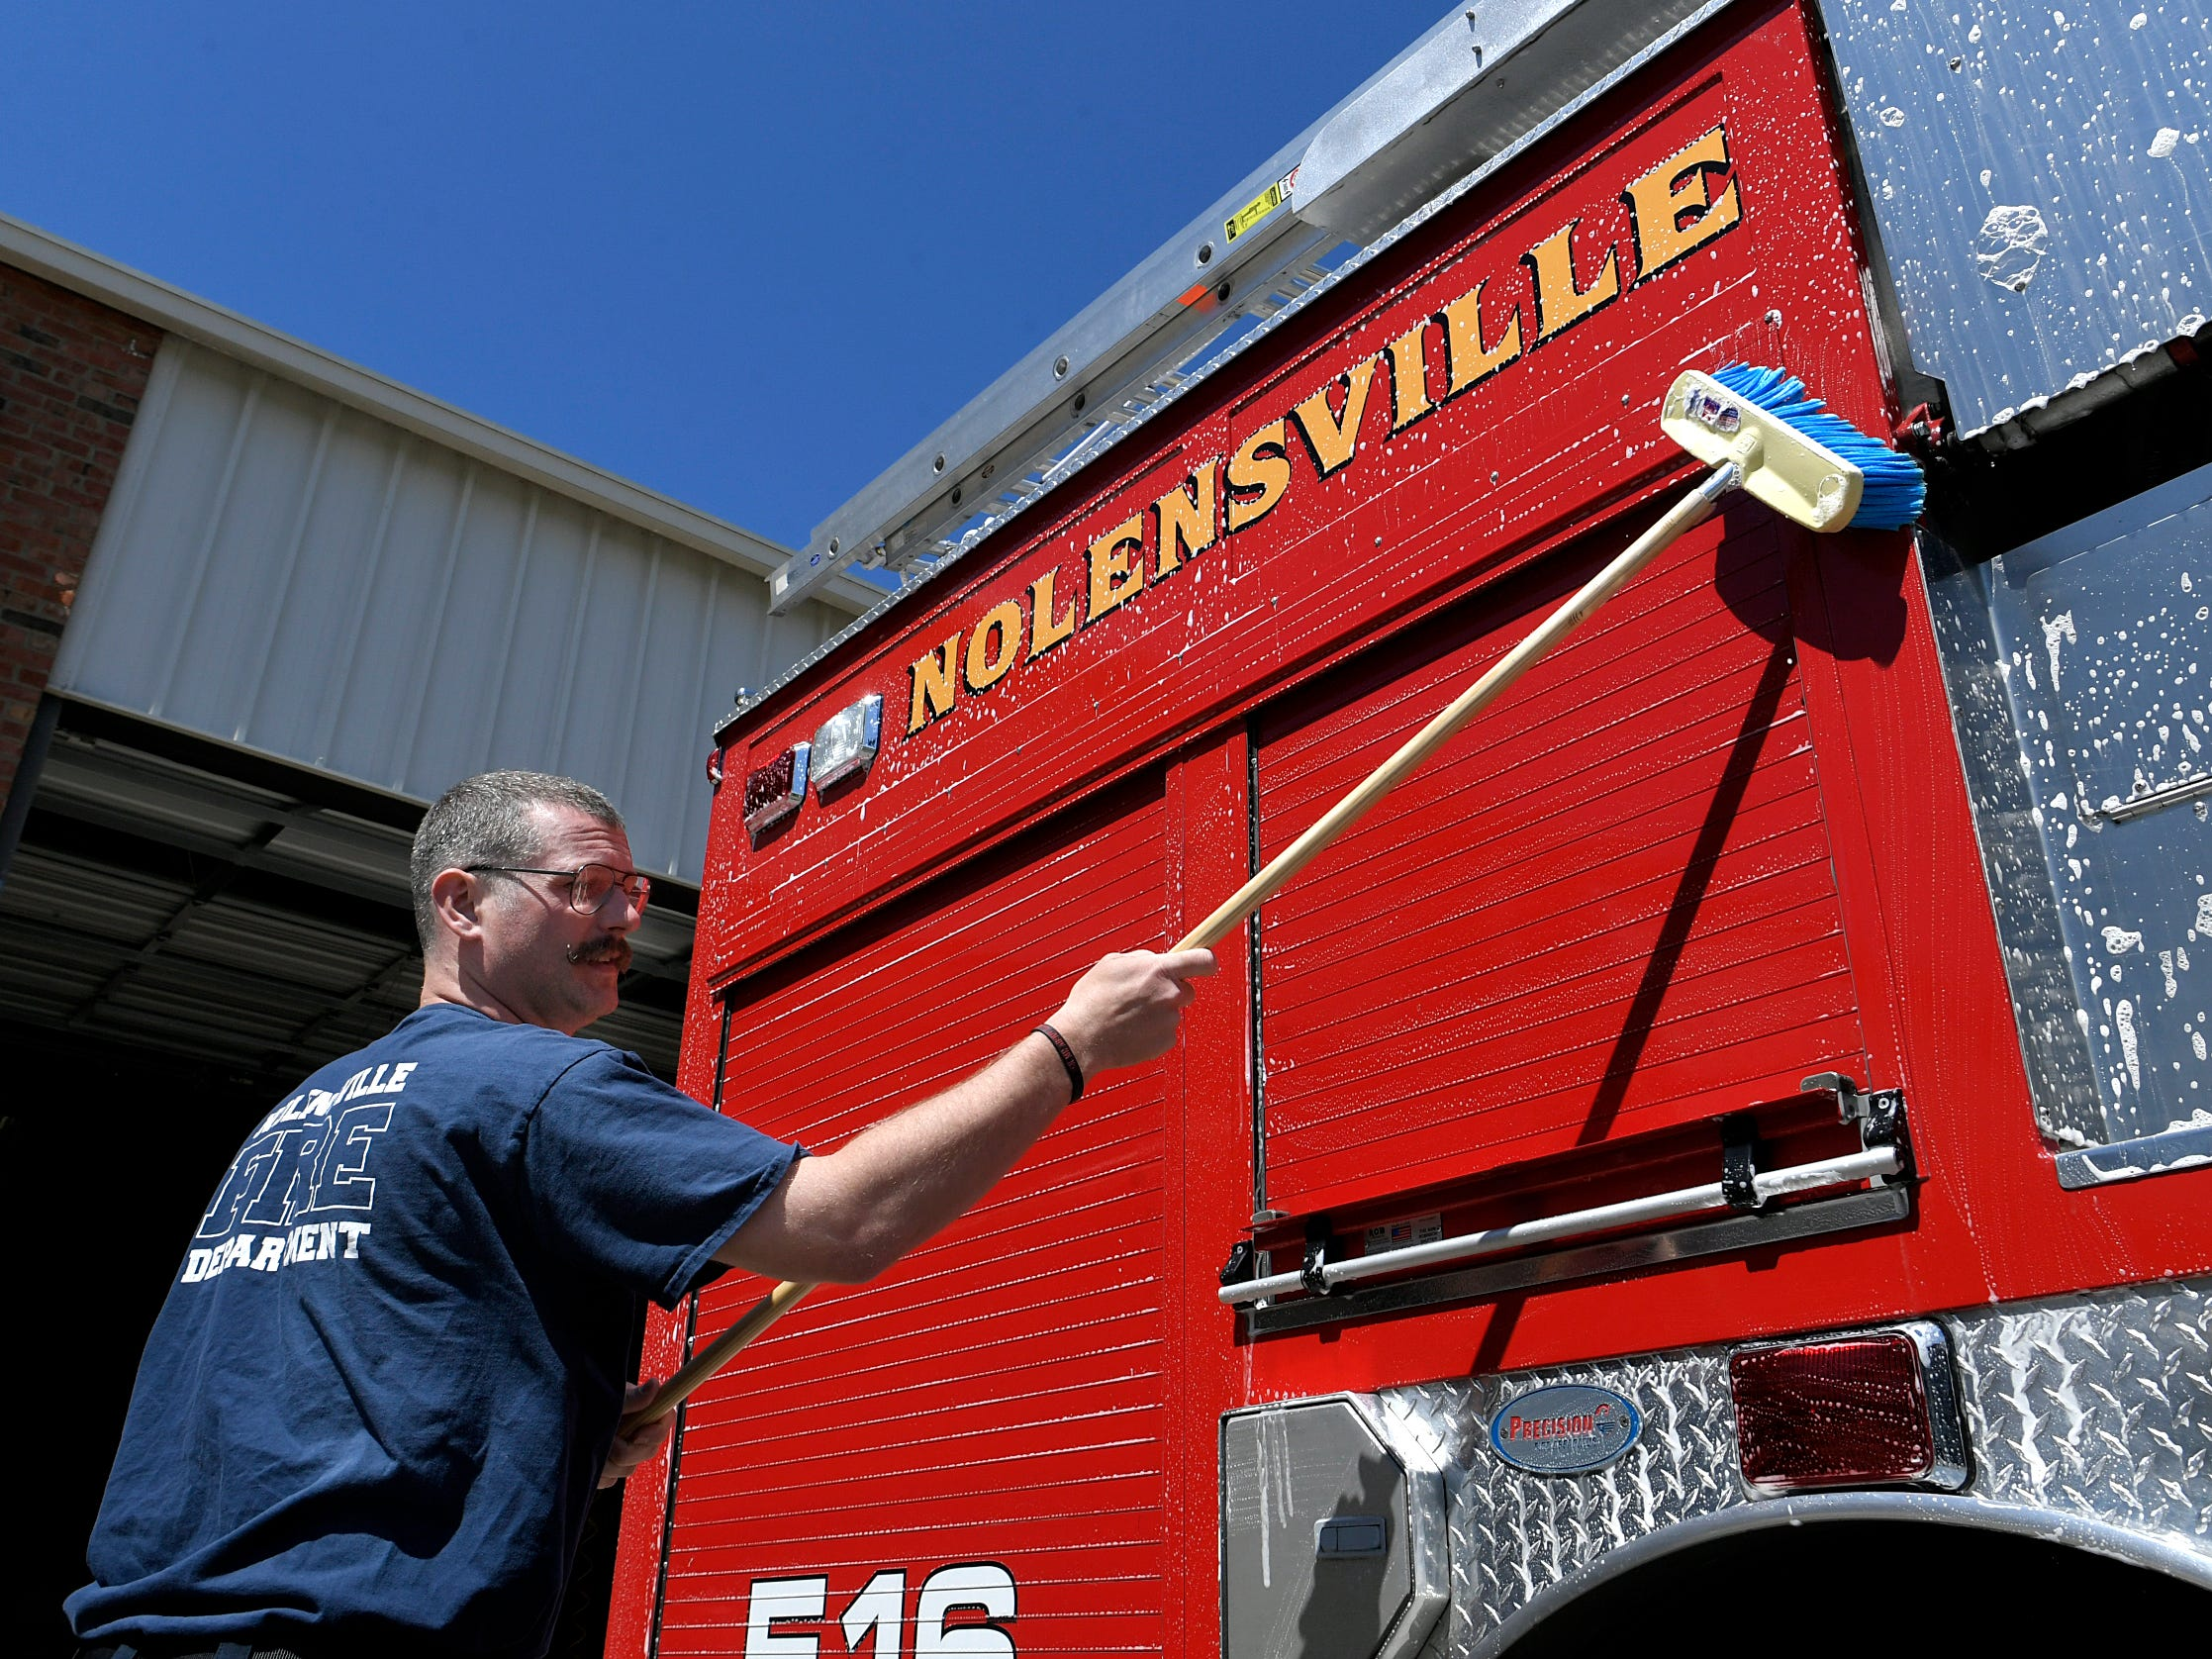 Nolensville Volunteer Fire Department member Daron Standifird washes the department's firetruck between calls on Monday, April 15, 2019.